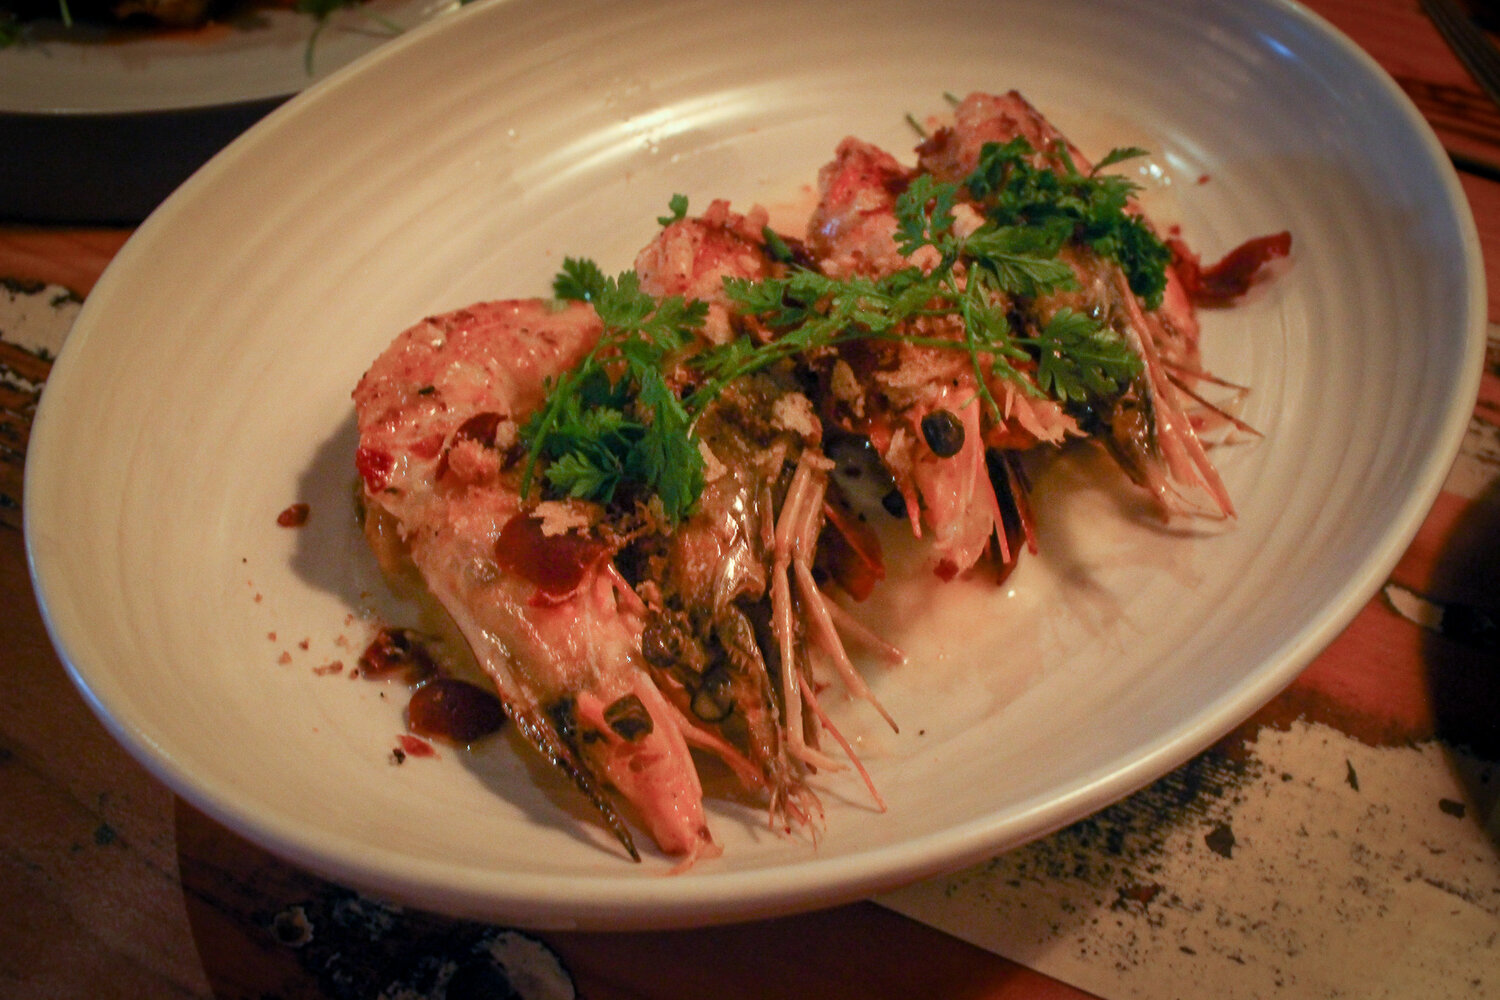 Gulf prawns with Serrano ham, herbed butter, and breadcrumbs.